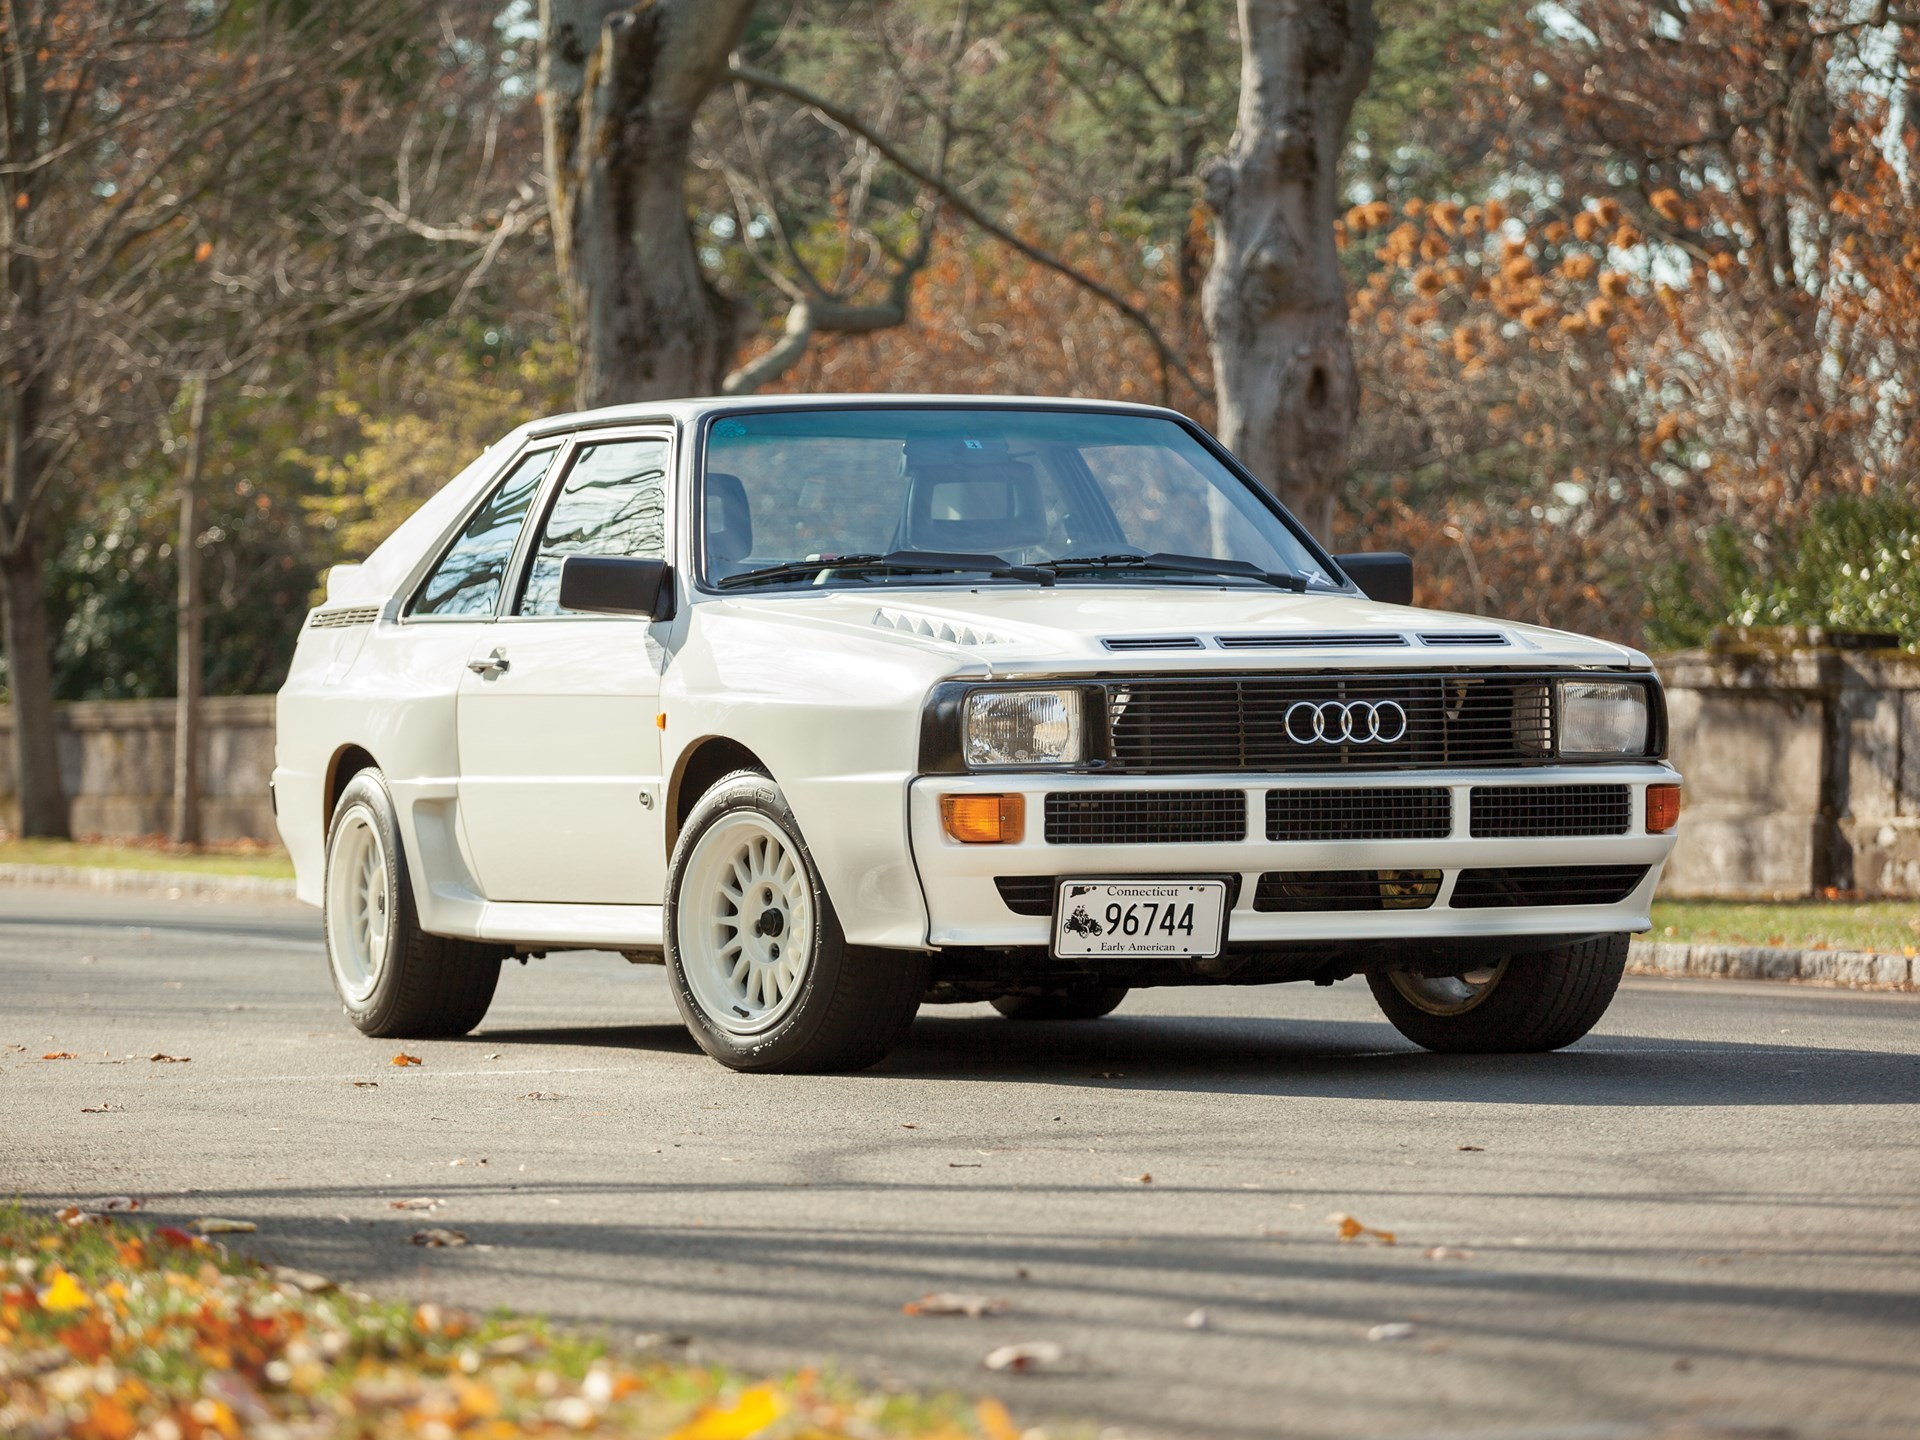 1984 Audi Quattro For Sale In South Africa